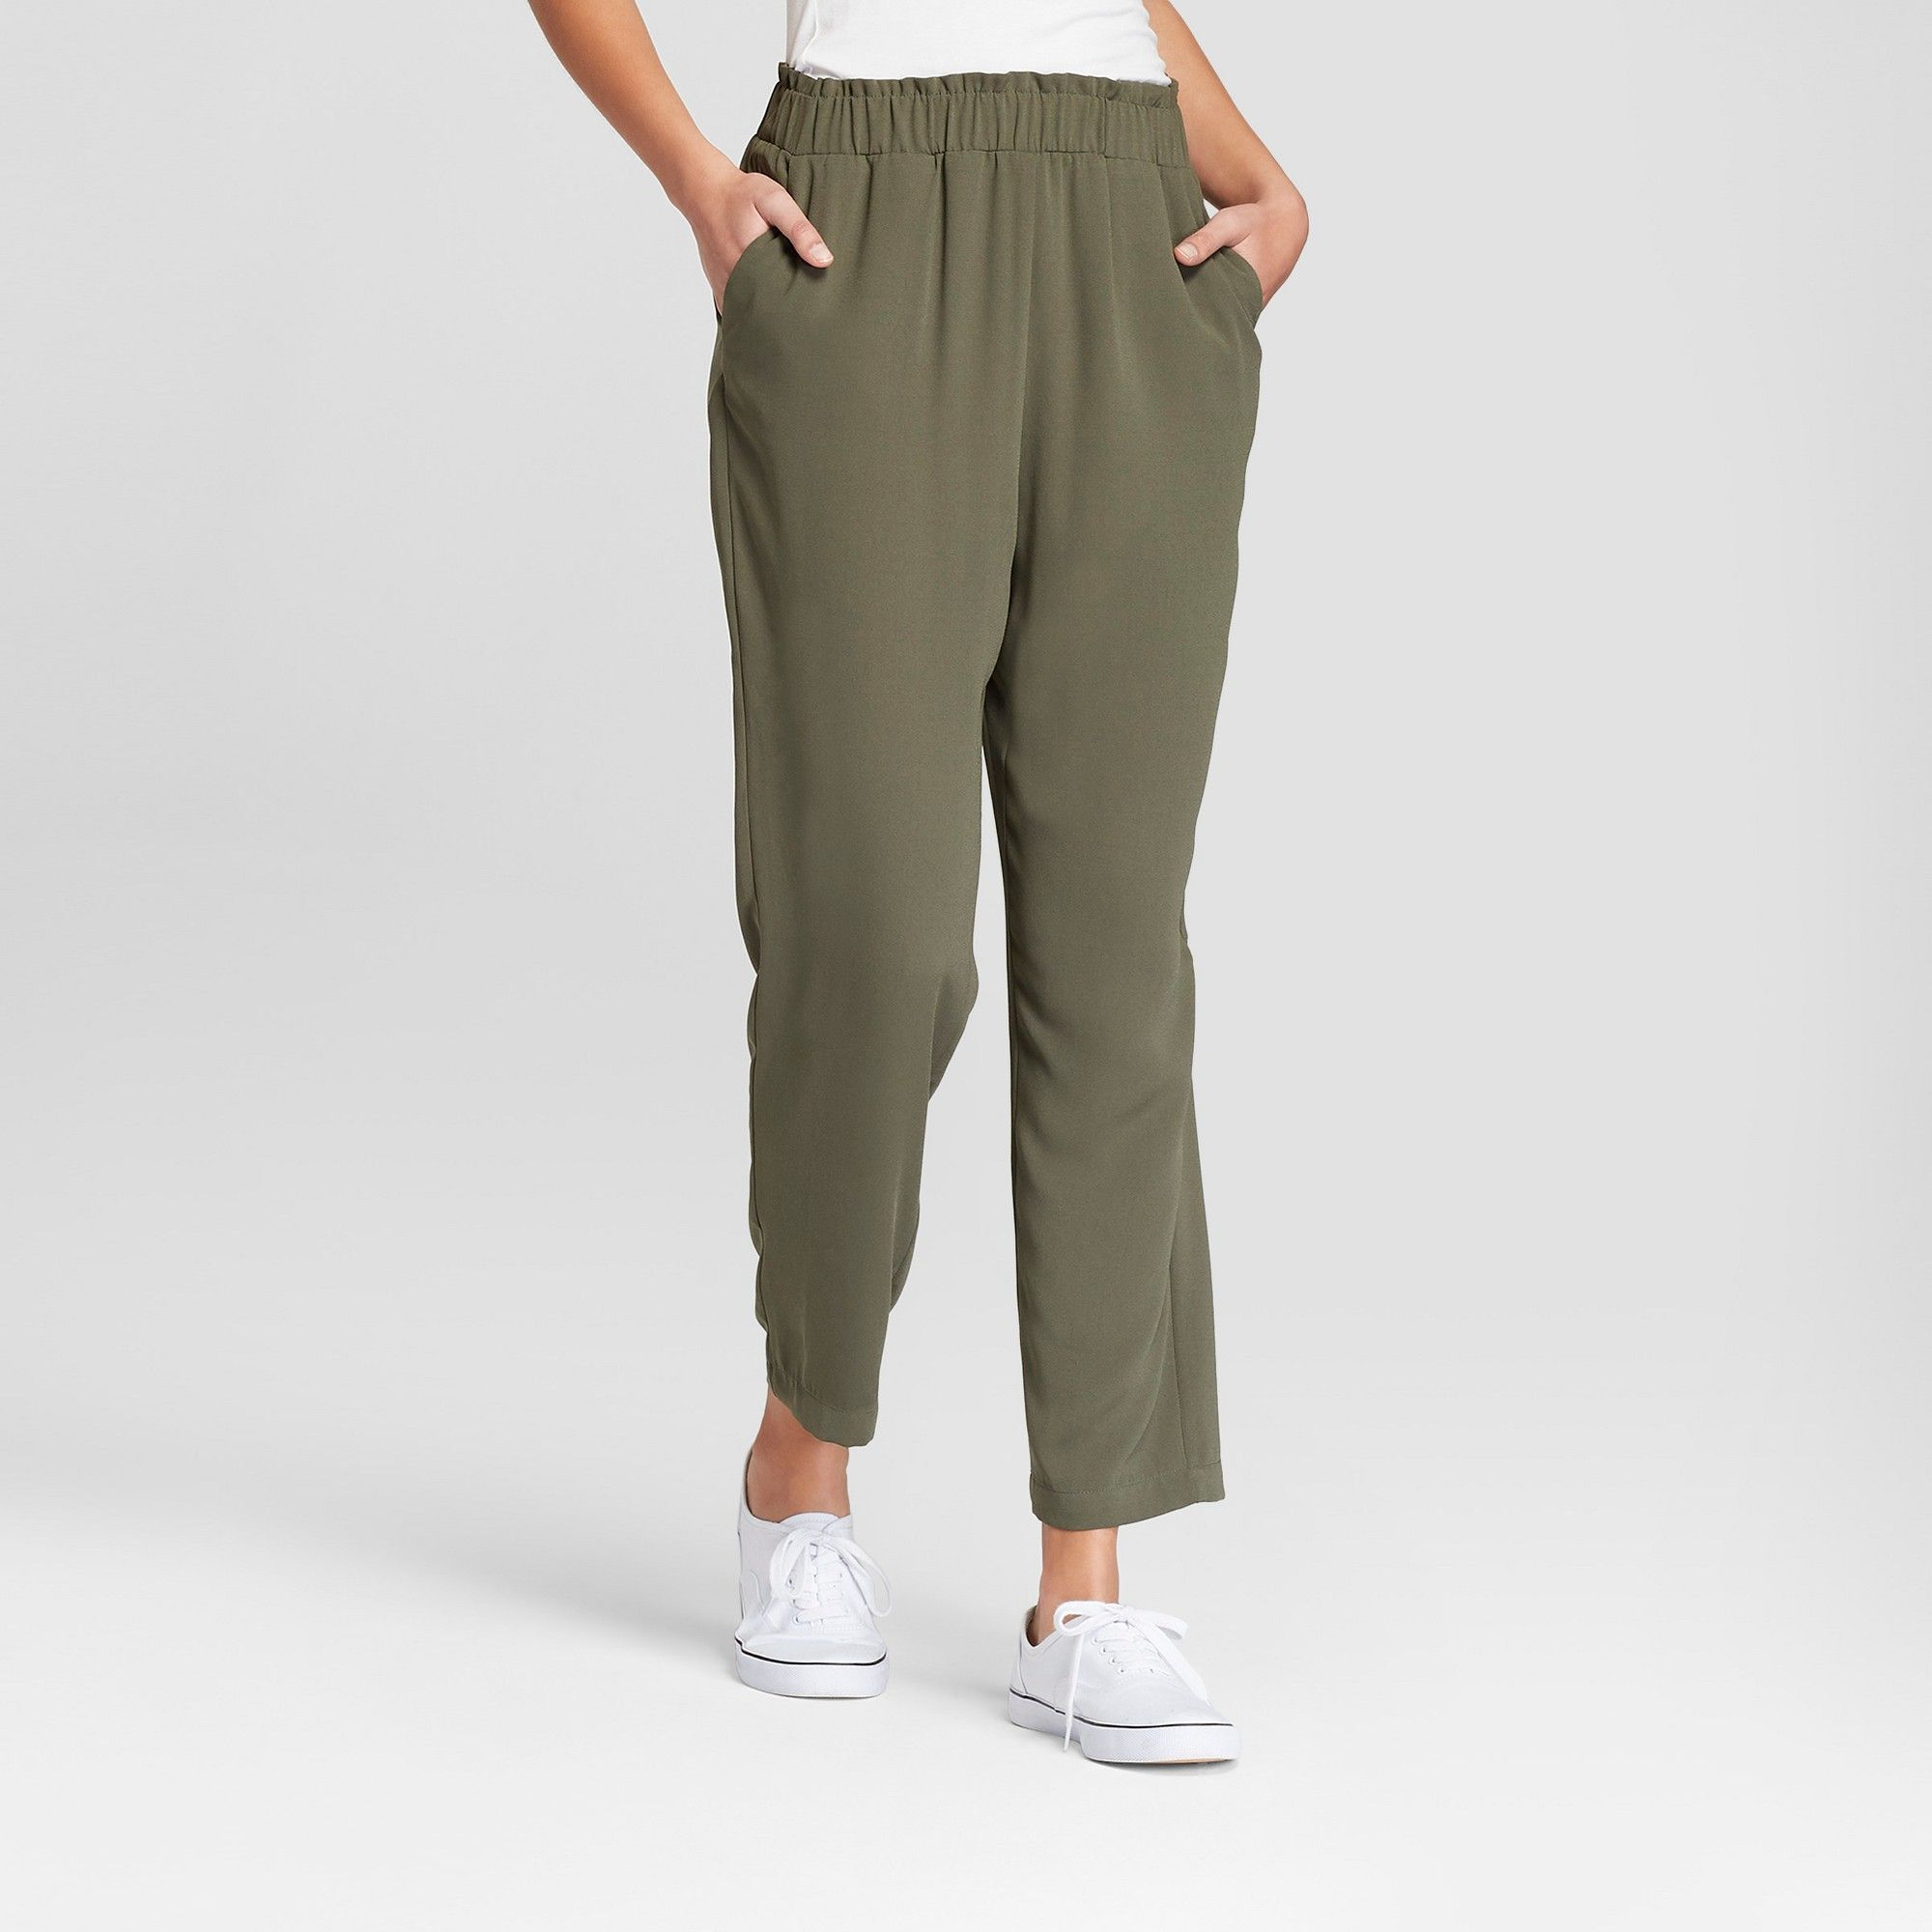 bf8d5d53154 Women s Crepe Paperbag Jogger Pants - A New Day Olive (Green) XL ...